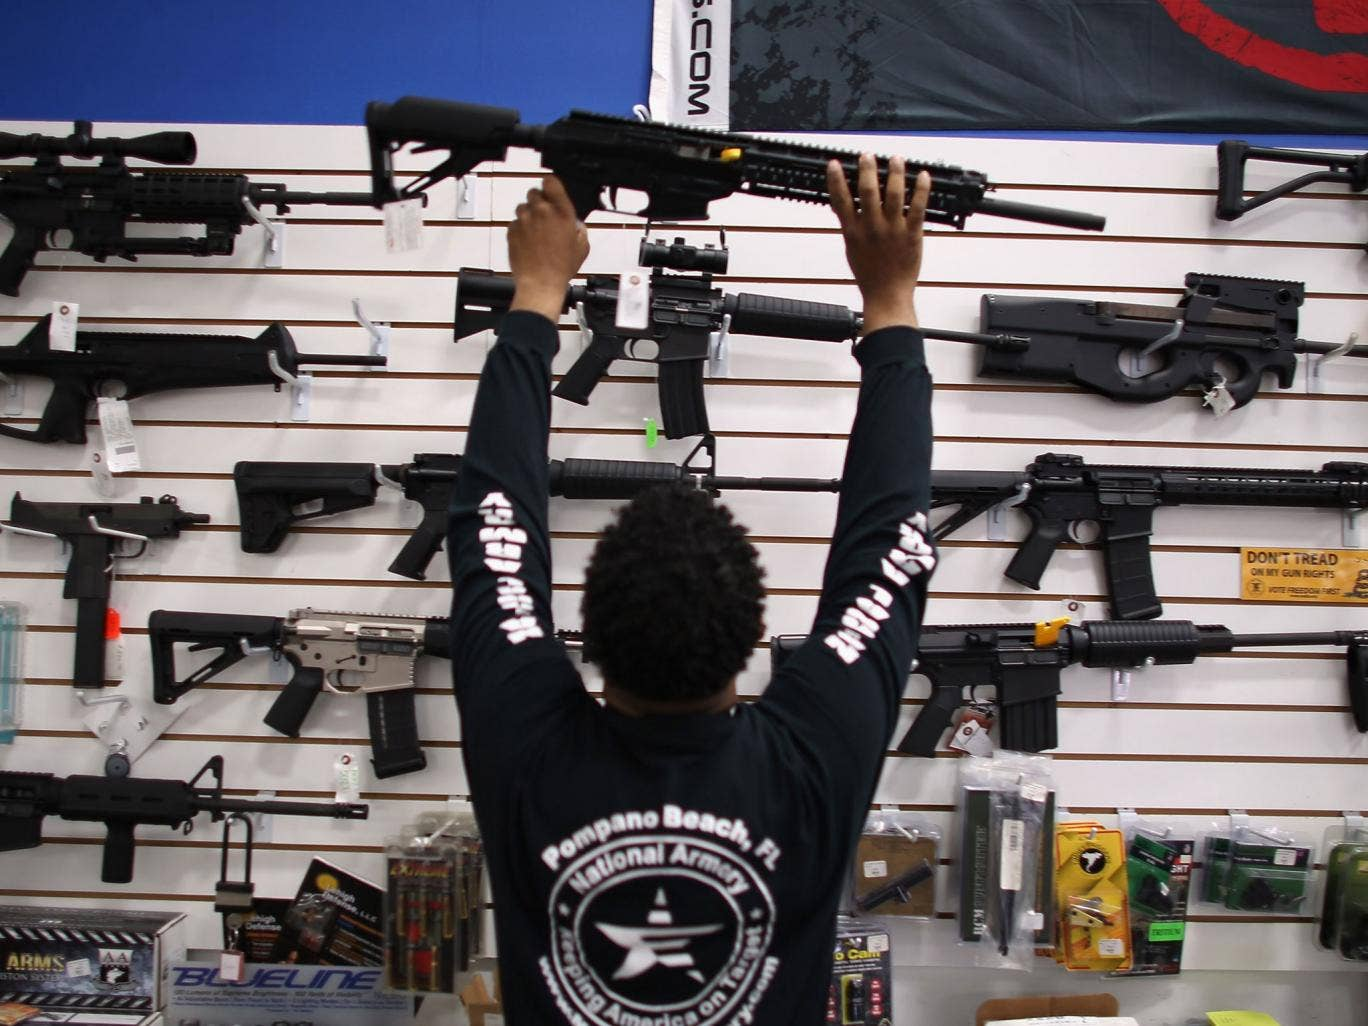 Senate failed to tighten gun laws, but conservatives have not got it all their own way